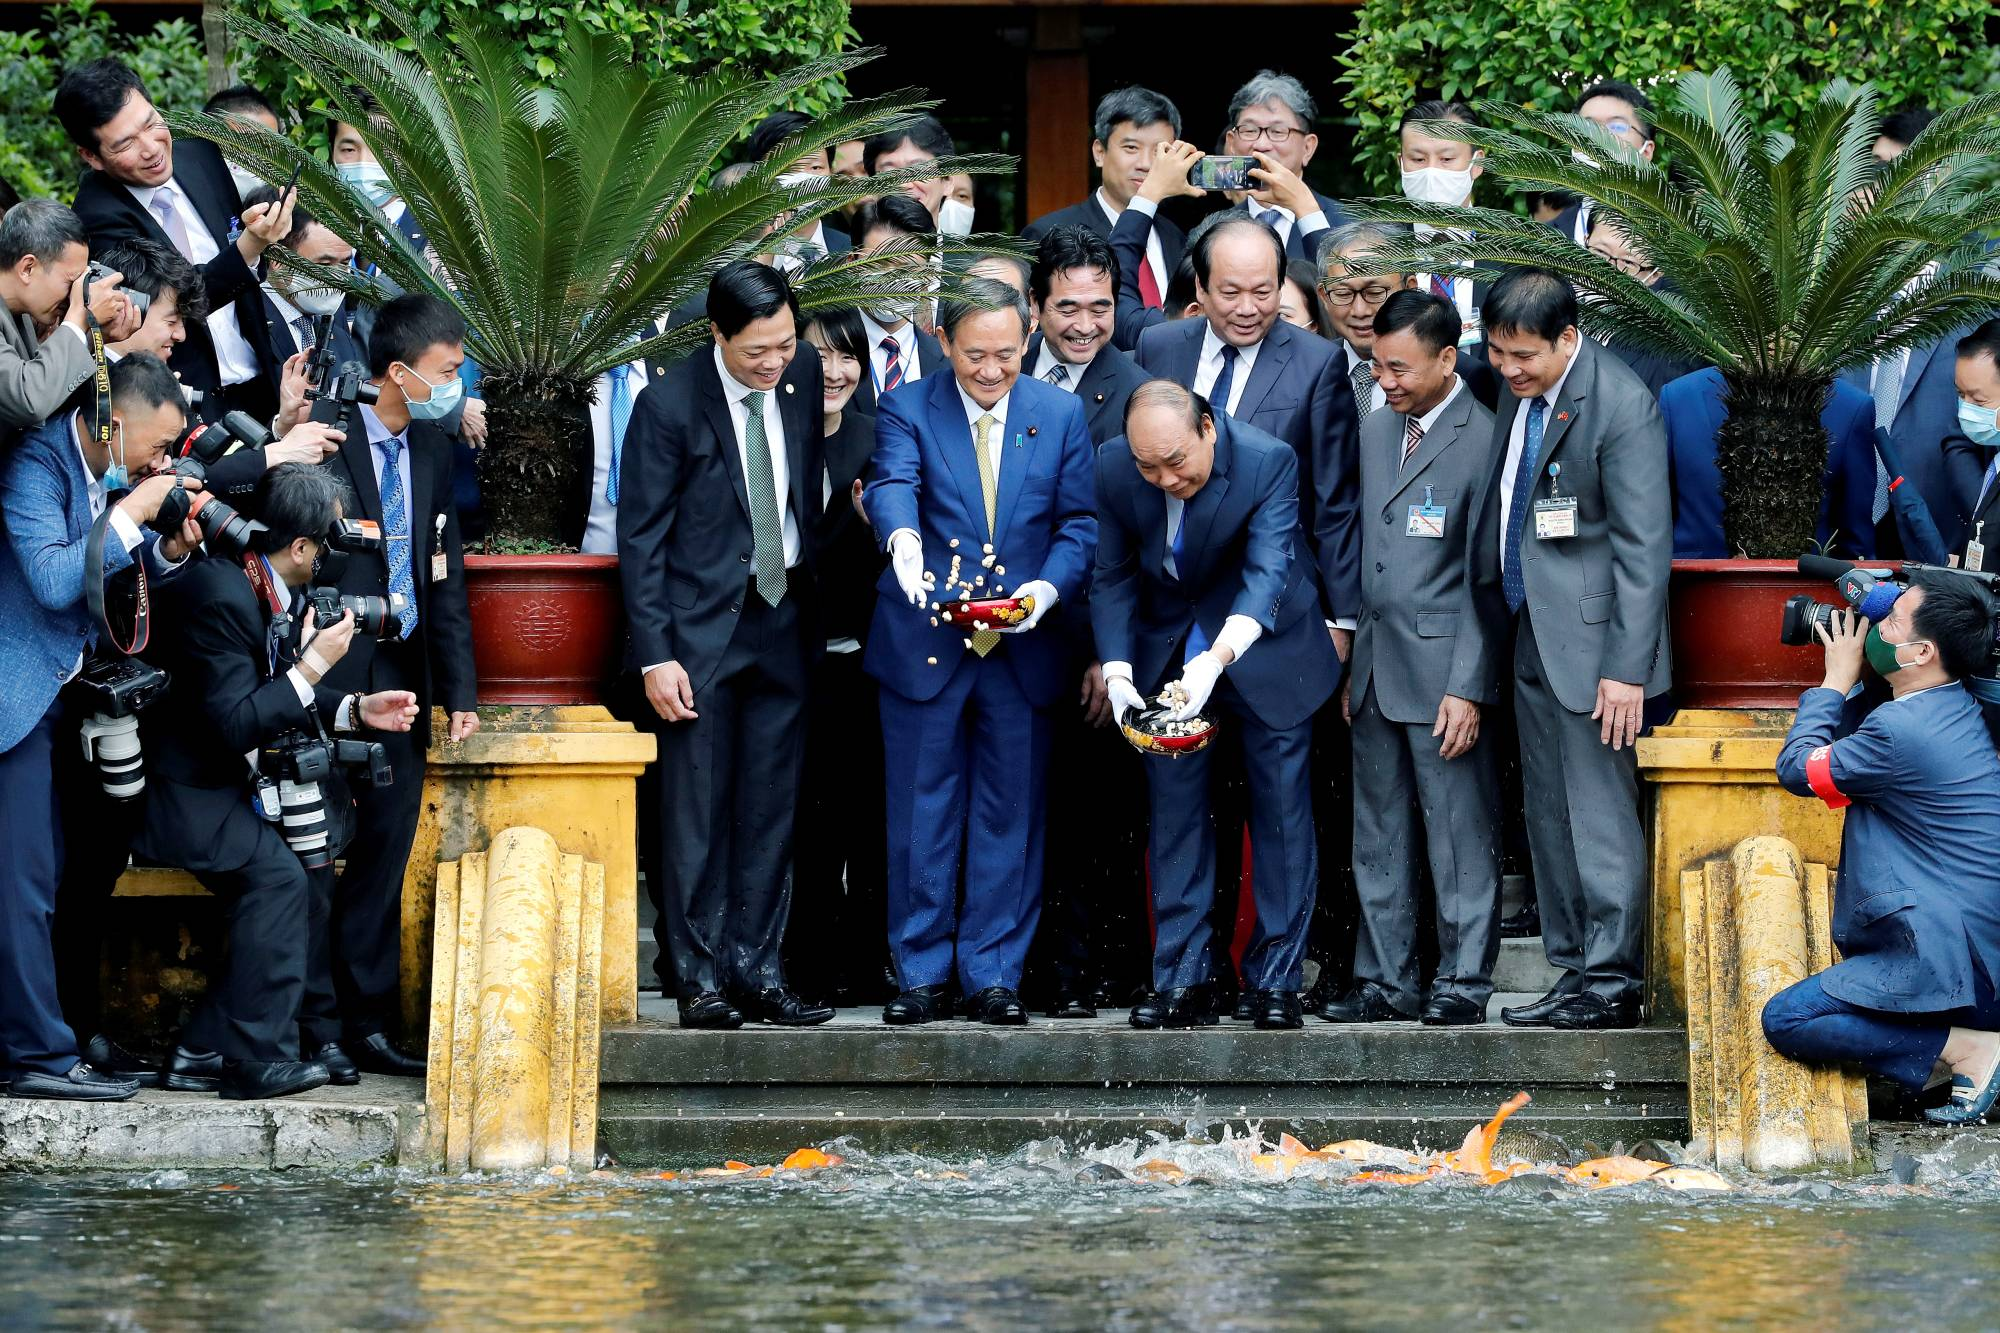 Prime Minister Yoshihide Suga and his Vietnamese counterpart, Nguyen Xuan Phuc, feed the fish by a pond at the Presidential Palace compound in Hanoi in October. | POOL / VIA REUTERS